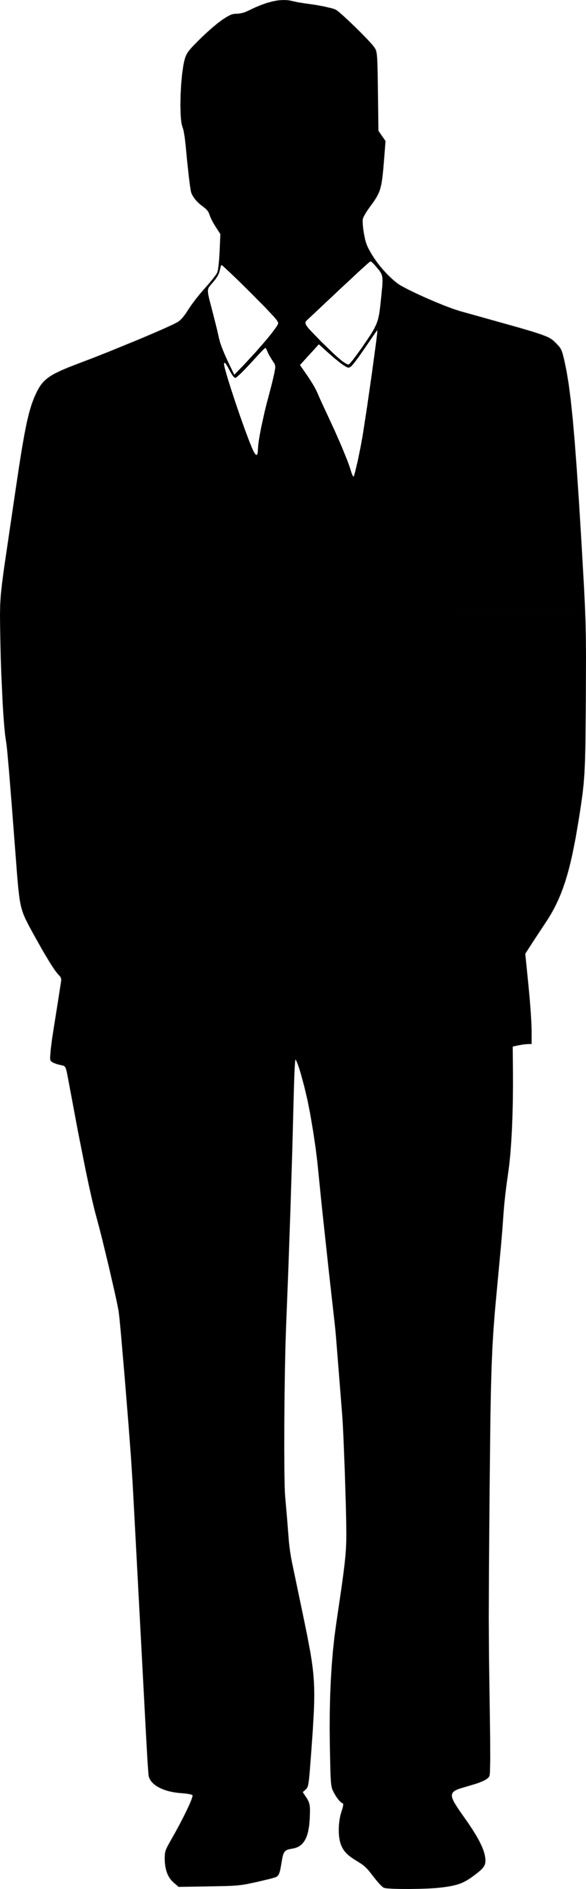 Human Silhouette Images